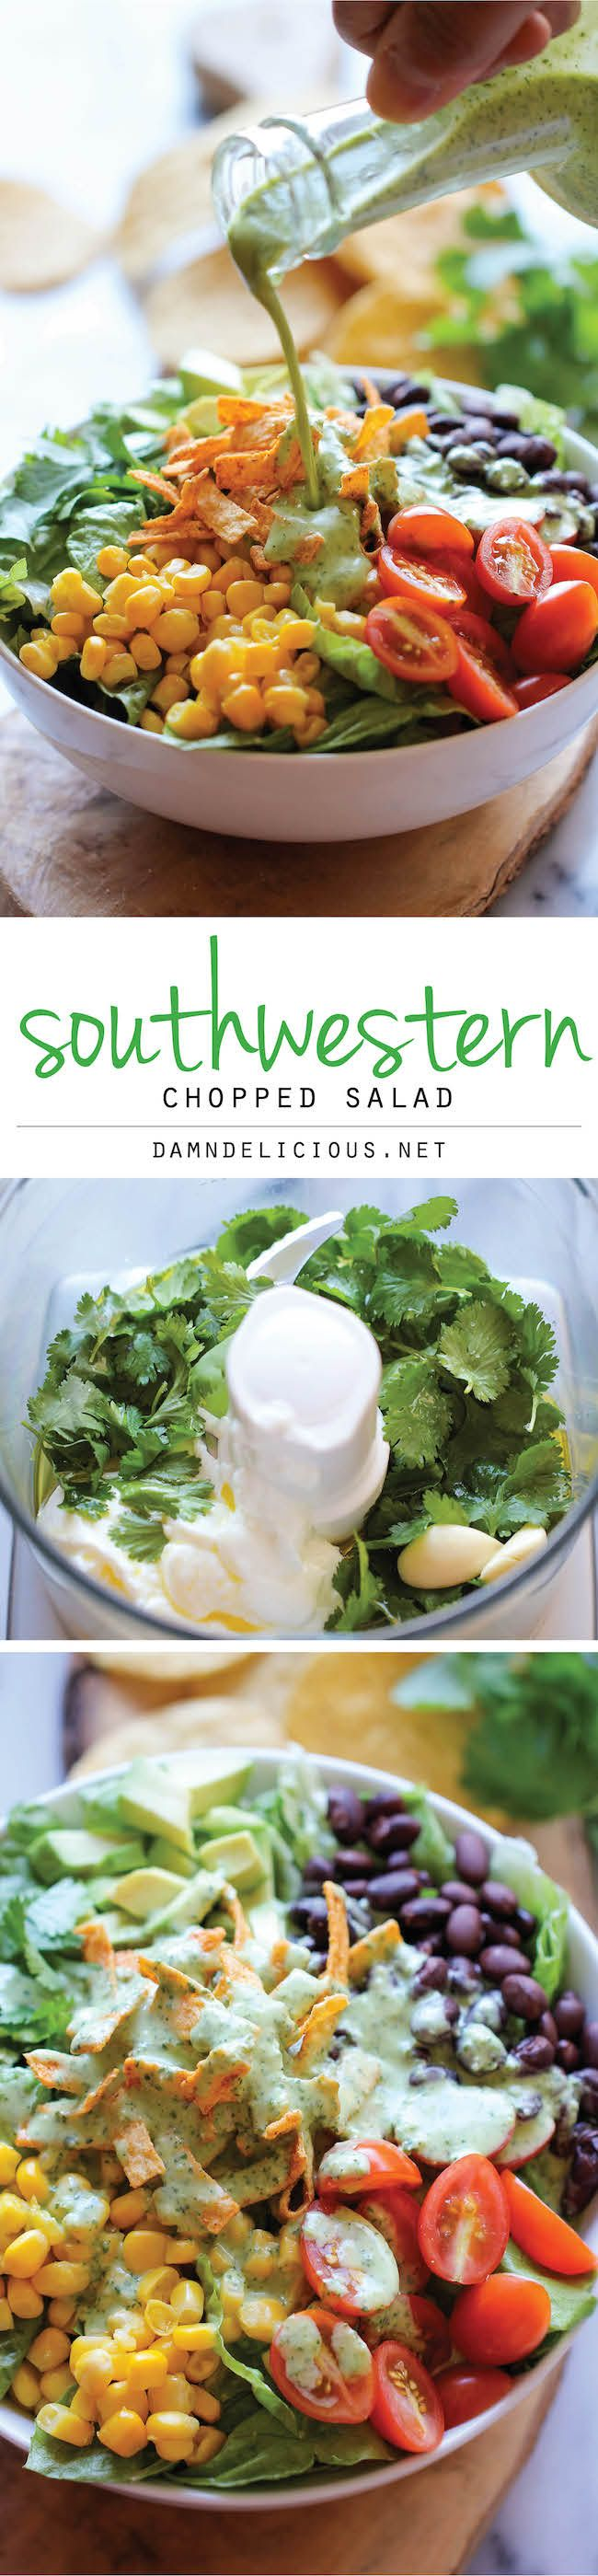 sunglasses accessories Southwestern Chopped Salad with Cilantro Lime Dressing   A tex mex style salad with an incredibly creamy Greek yogurt cilantro dressing